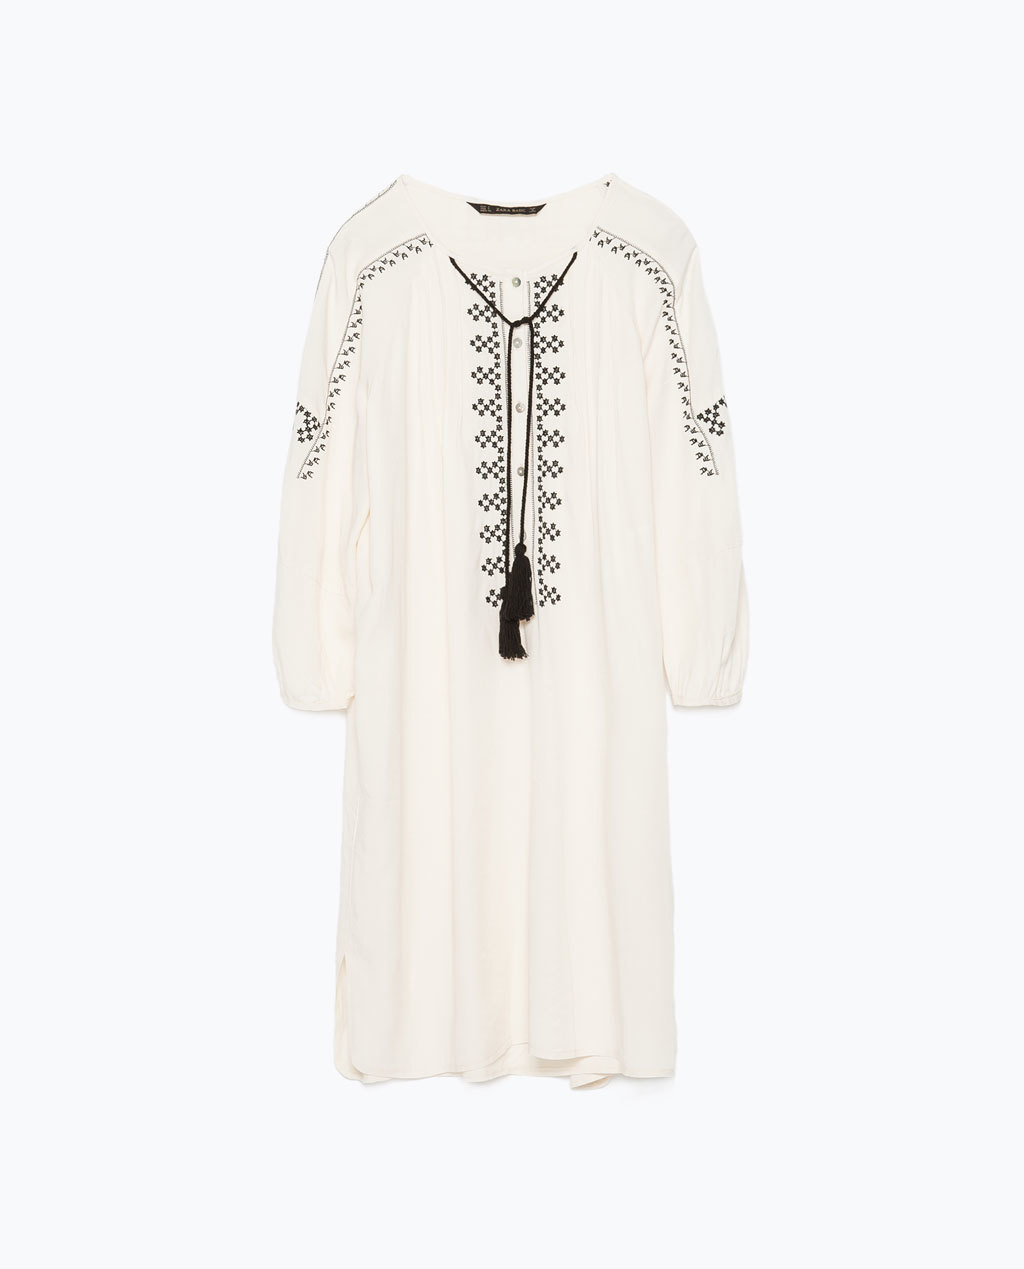 Embroidered Tunic - style: tunic; length: mid thigh; neckline: round neck; fit: loose; pattern: plain; predominant colour: ivory/cream; secondary colour: black; occasions: casual, holiday, creative work; fibres: viscose/rayon - 100%; sleeve length: 3/4 length; sleeve style: standard; texture group: cotton feel fabrics; pattern type: fabric; embellishment: embroidered; season: s/s 2015; wardrobe: highlight; embellishment location: bust, sleeve/cuff